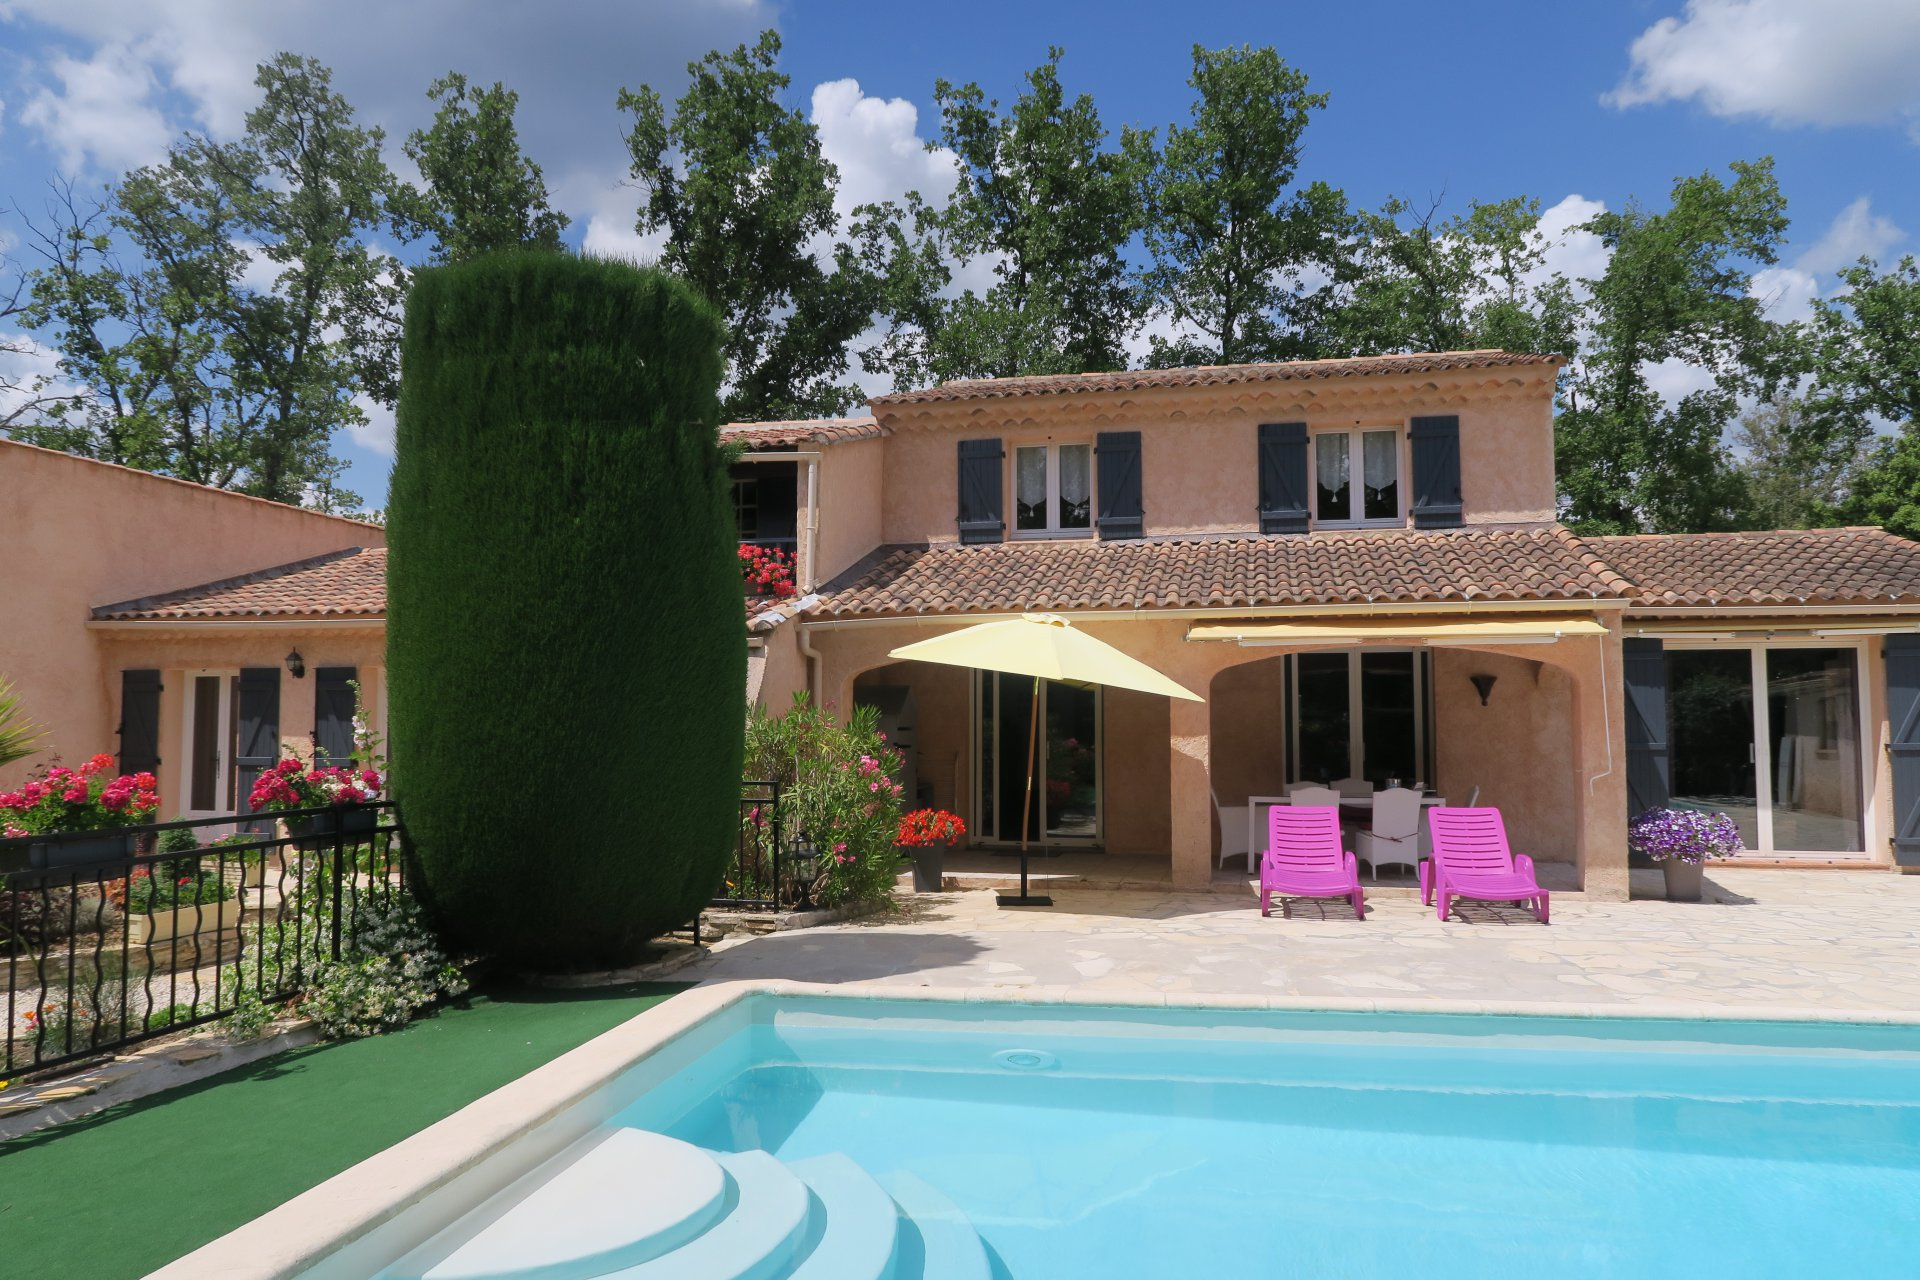 Large villa with pool and garden in residential area of Lorgues